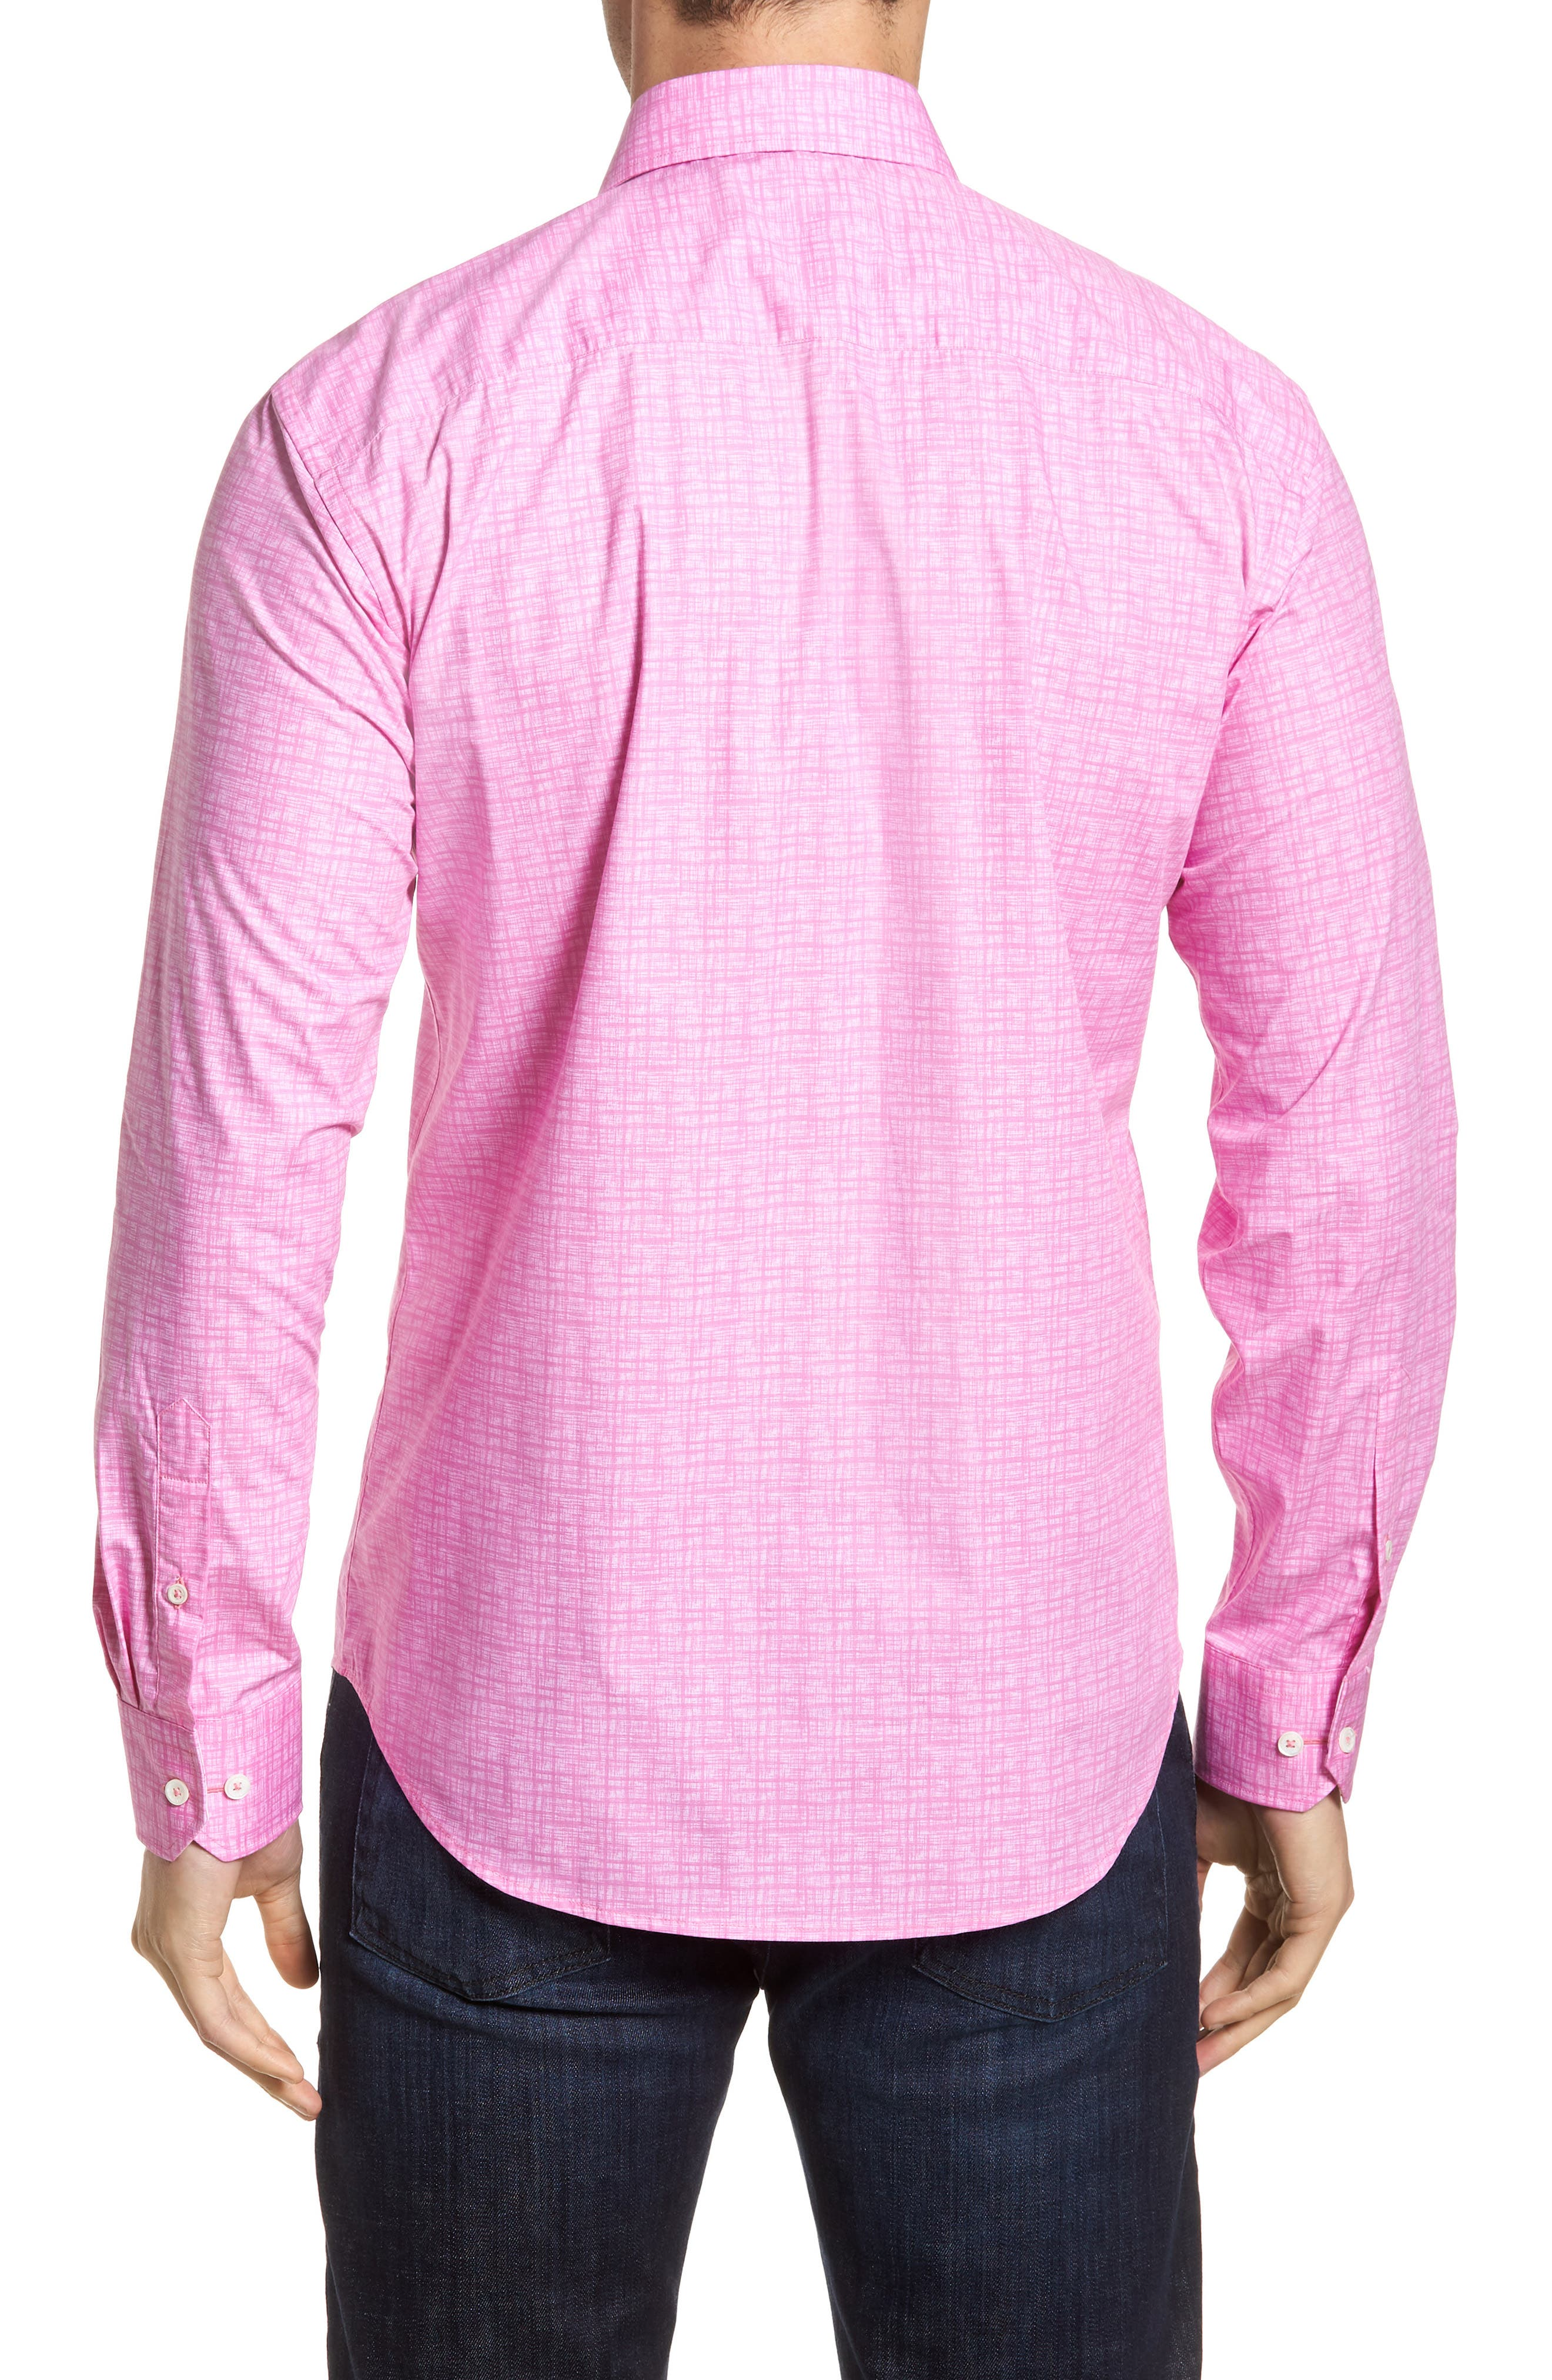 Freehand Shaped Fit Sport Shirt,                             Alternate thumbnail 3, color,                             Pink